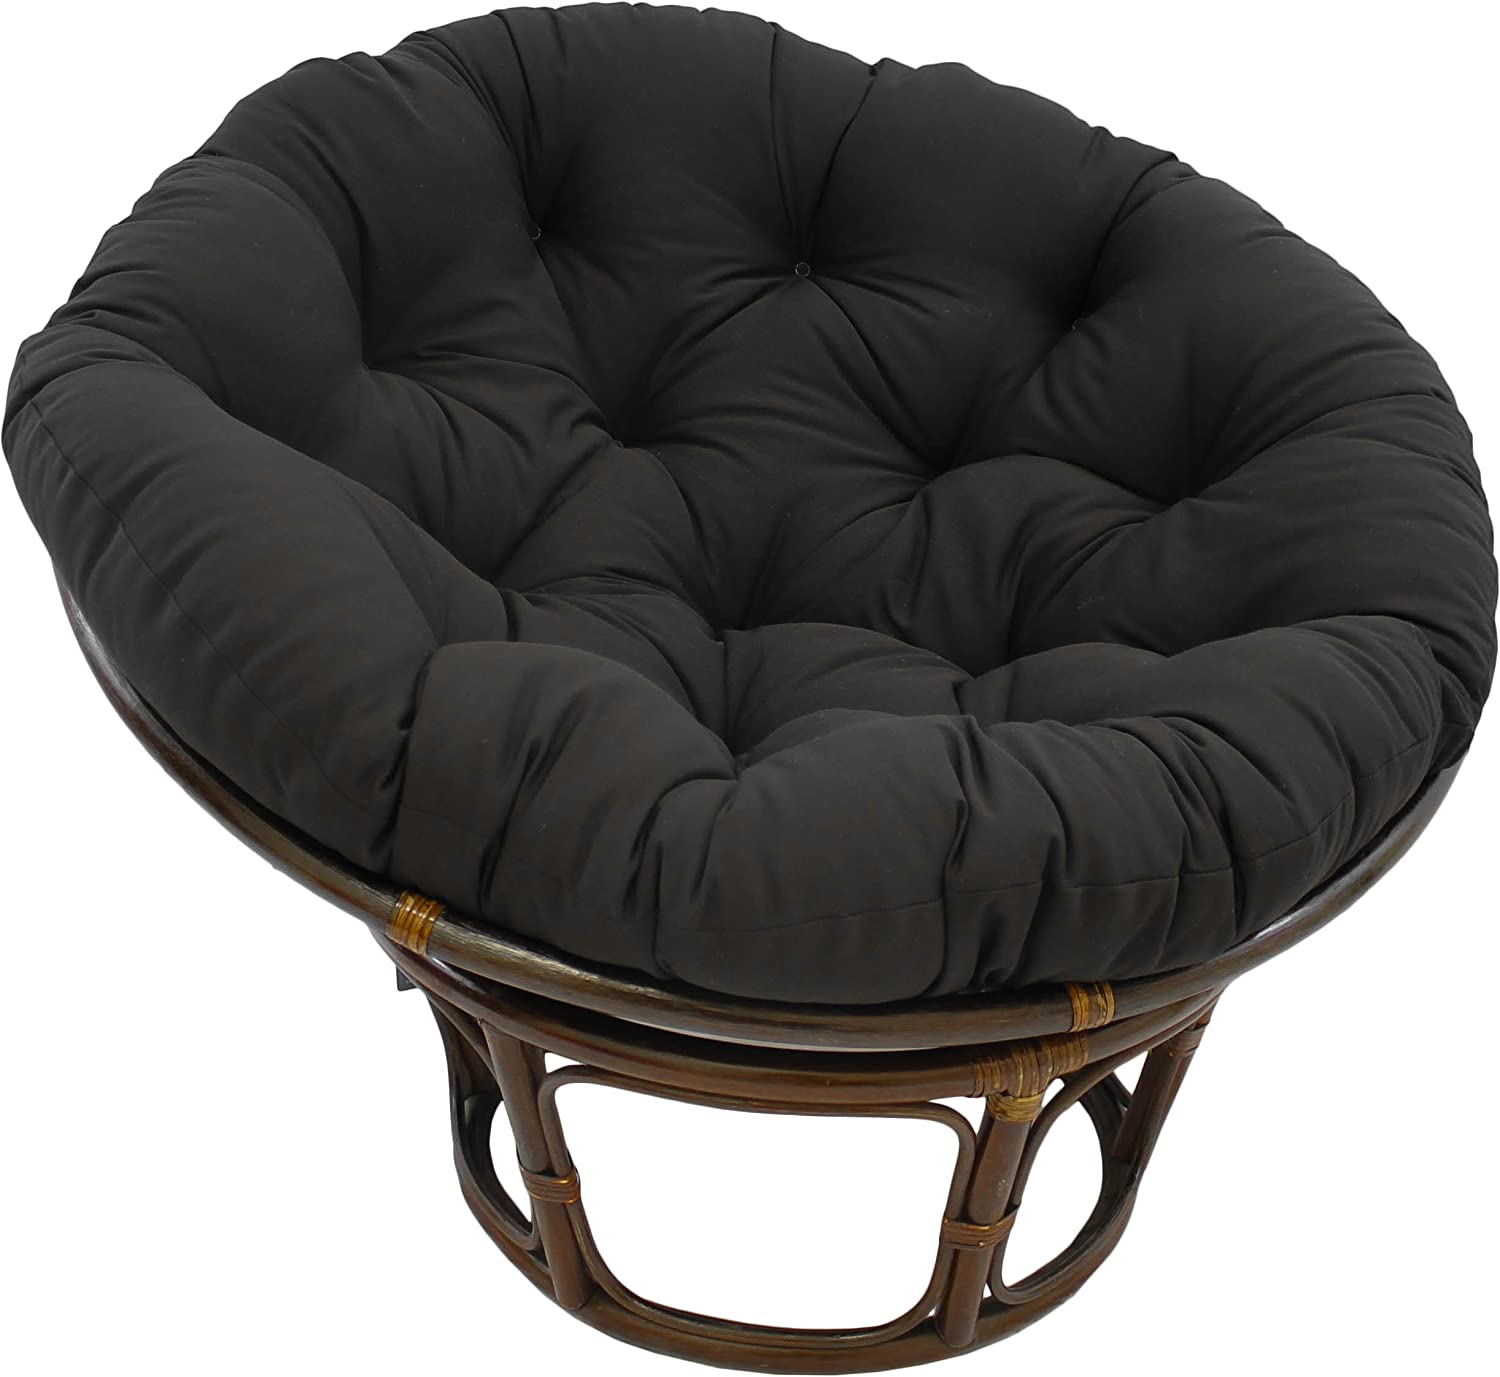 Amazon Com Blazing Needles Papasan Cushion 44 X 6 X 44 Black Home Kitchen